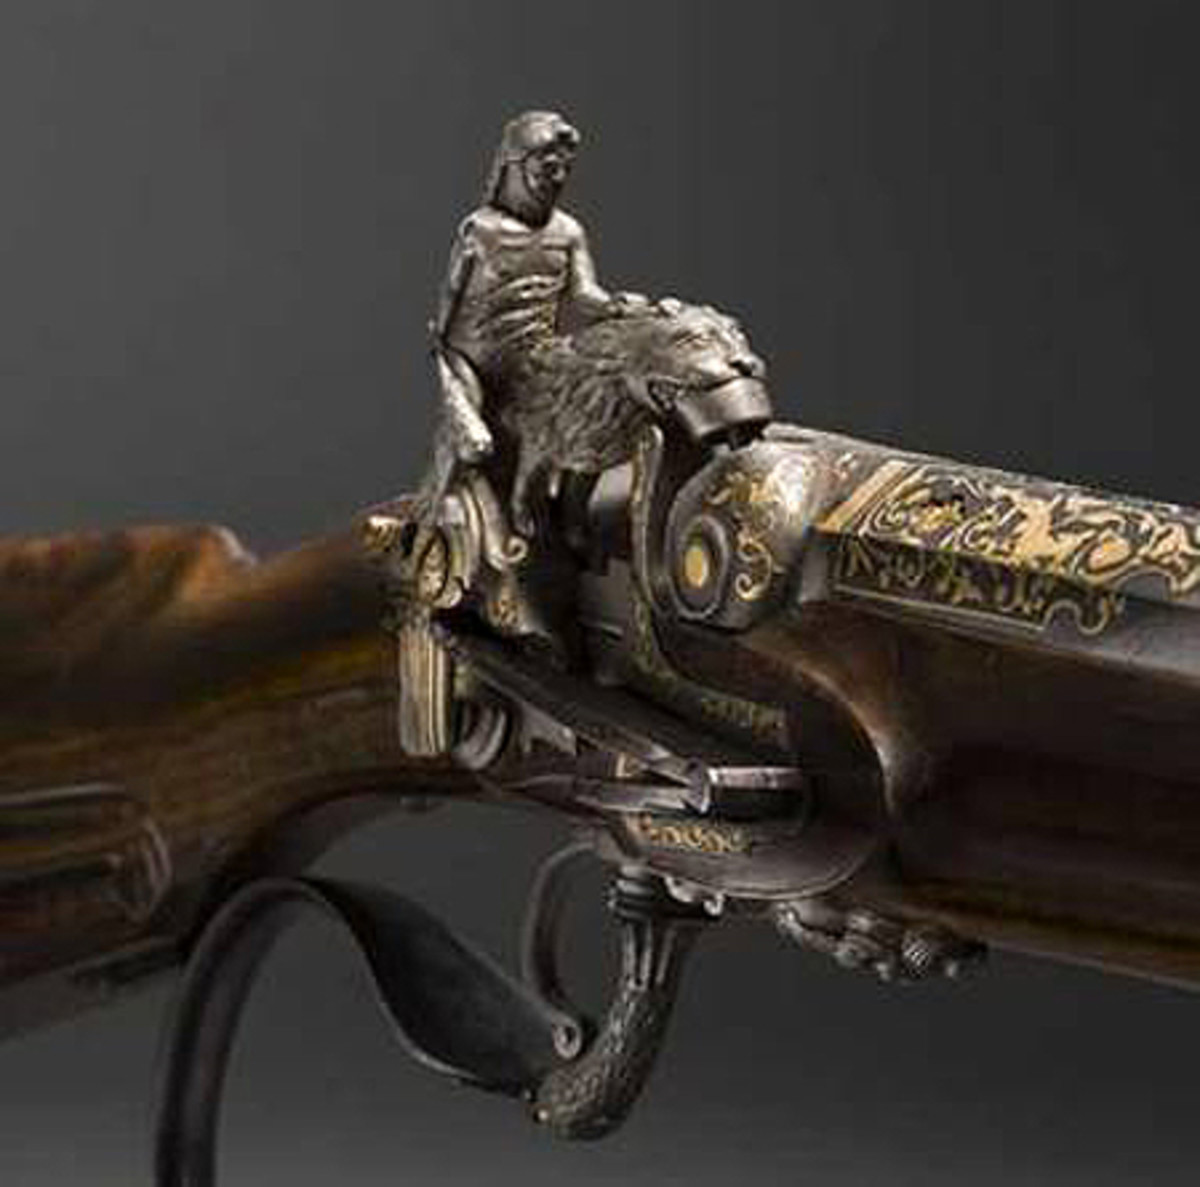 Spanish percussion flintlock was made in the middle of the 19th century.